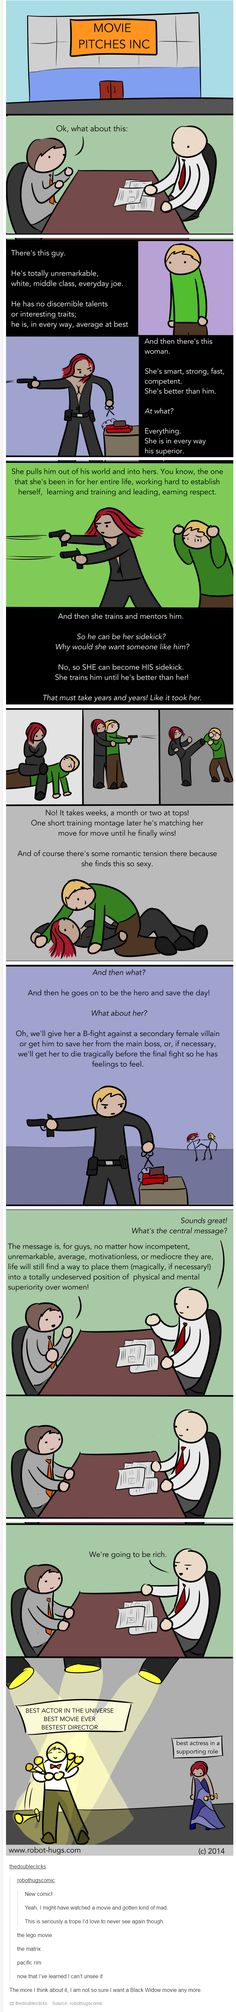 Robot Hugs comic: Female roles in movies. | The message is, for guys, no matter how incompetent, unremarkable, average, motivationless, or mediocre they are, life will still find a way to place them (magically, if necessary!) into a totally undeserved position of physical and mental superiority over women! | I still want a Black Widow movie; just let's please avoid this.